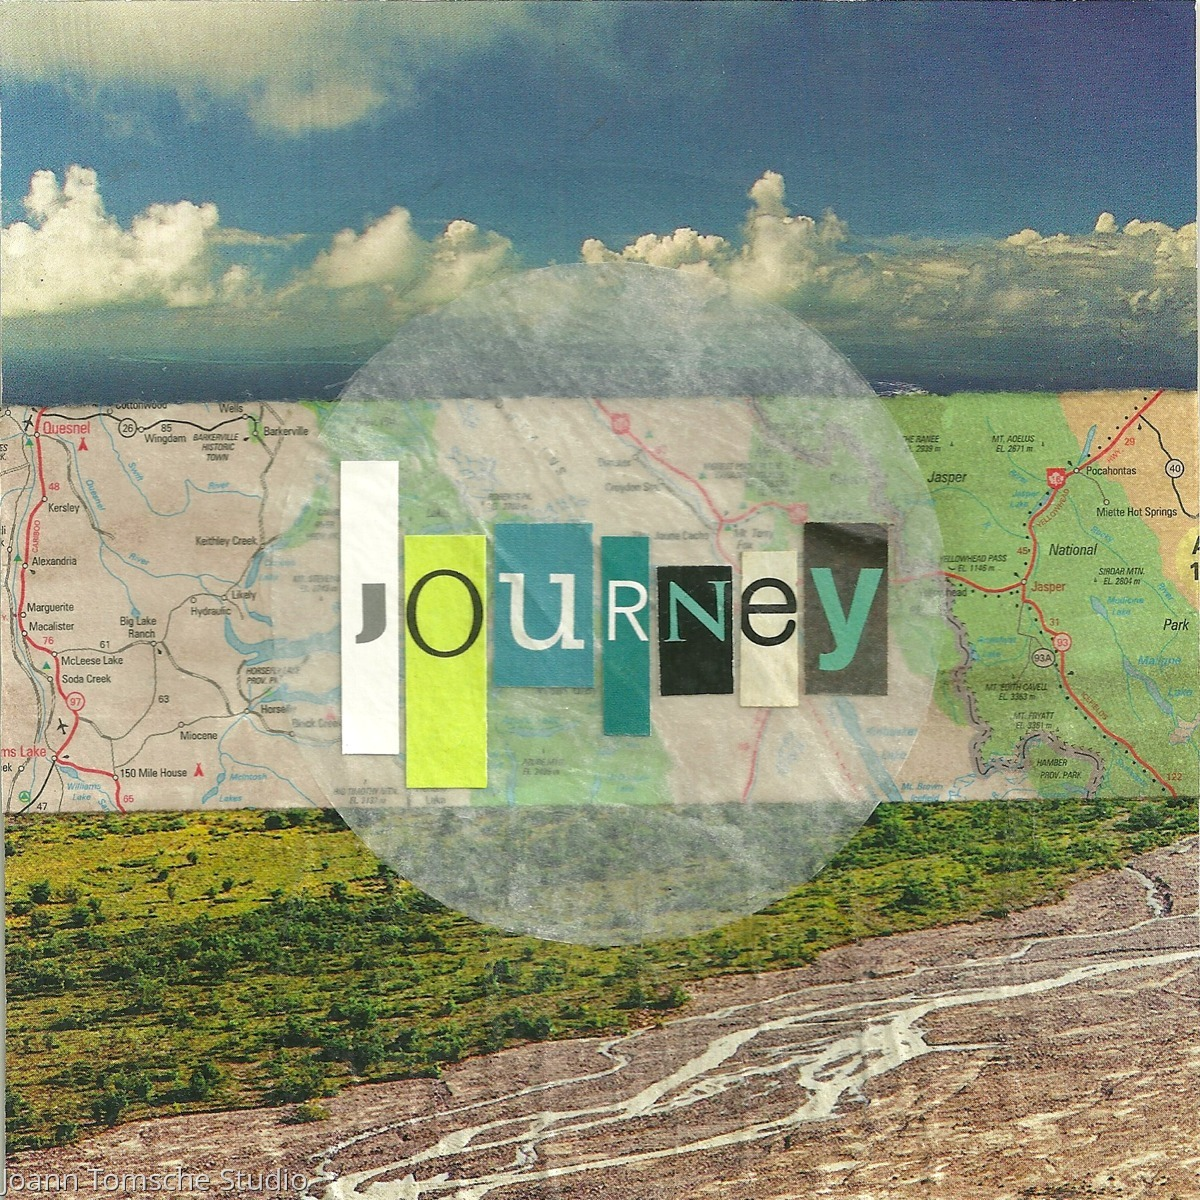 Journey art tile (large view)